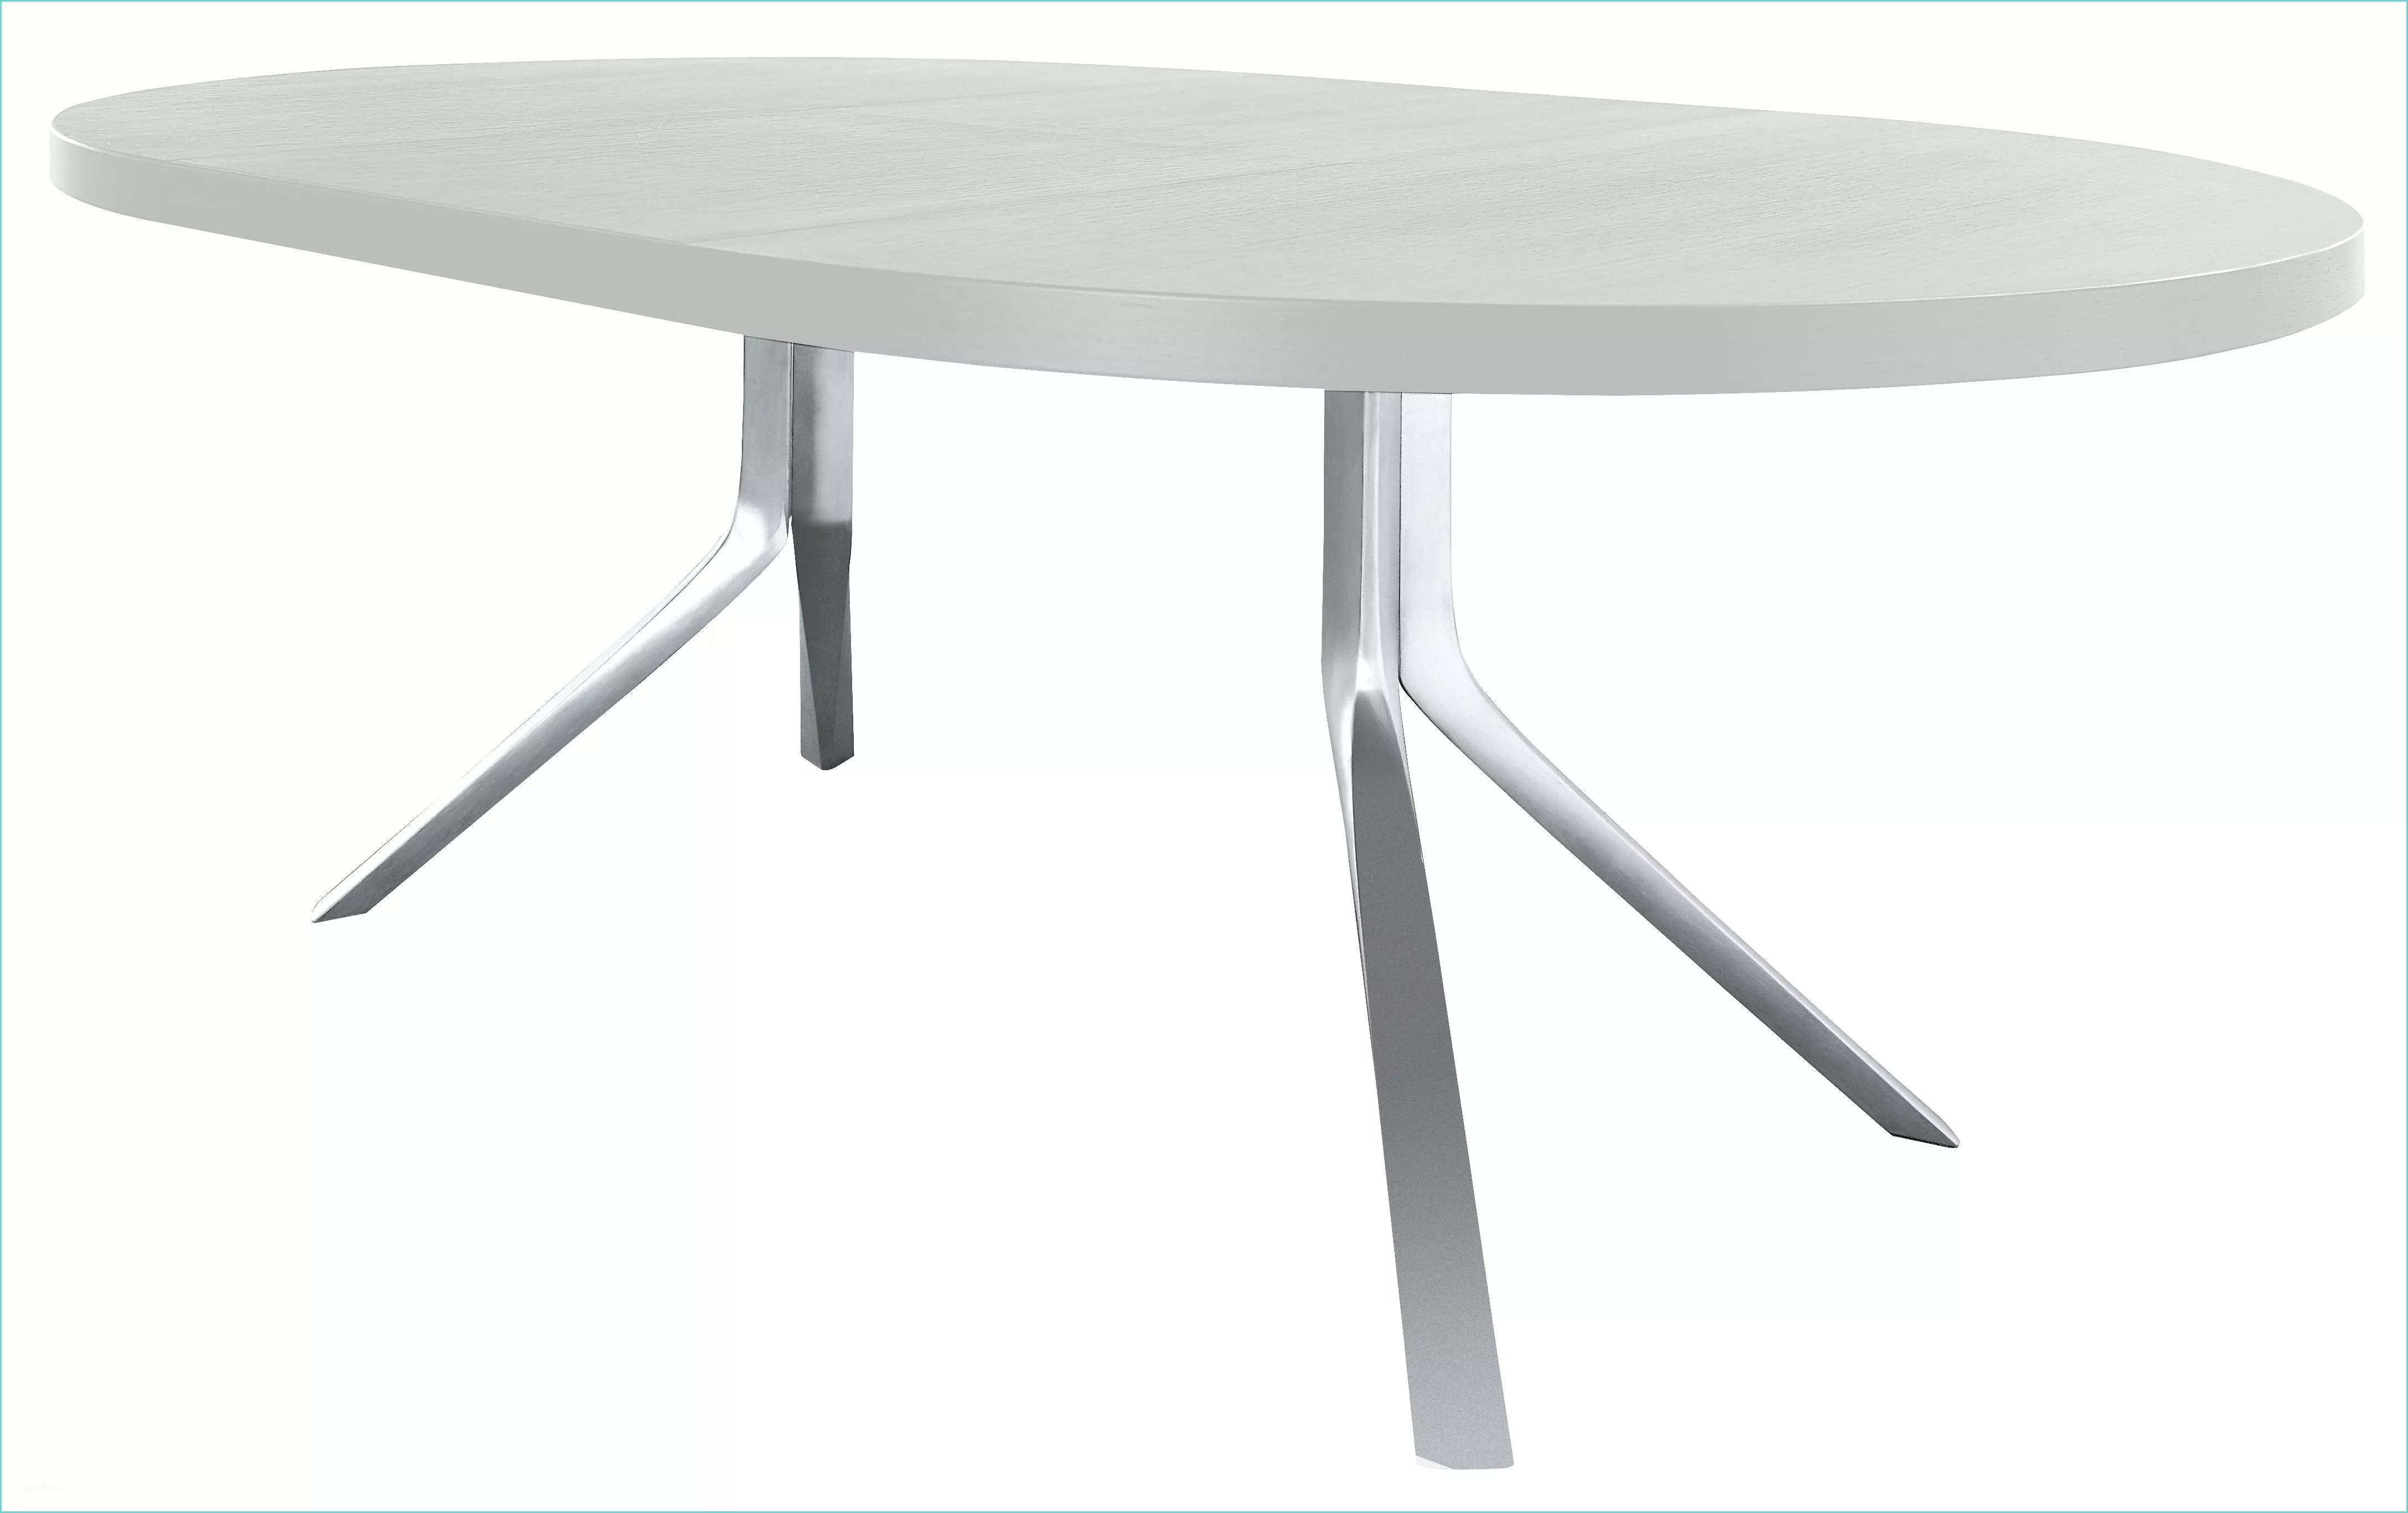 Table Ronde Avec Rallonge Fly Table Ronde Design Avec Rallonge Table Bois Ronde Avec